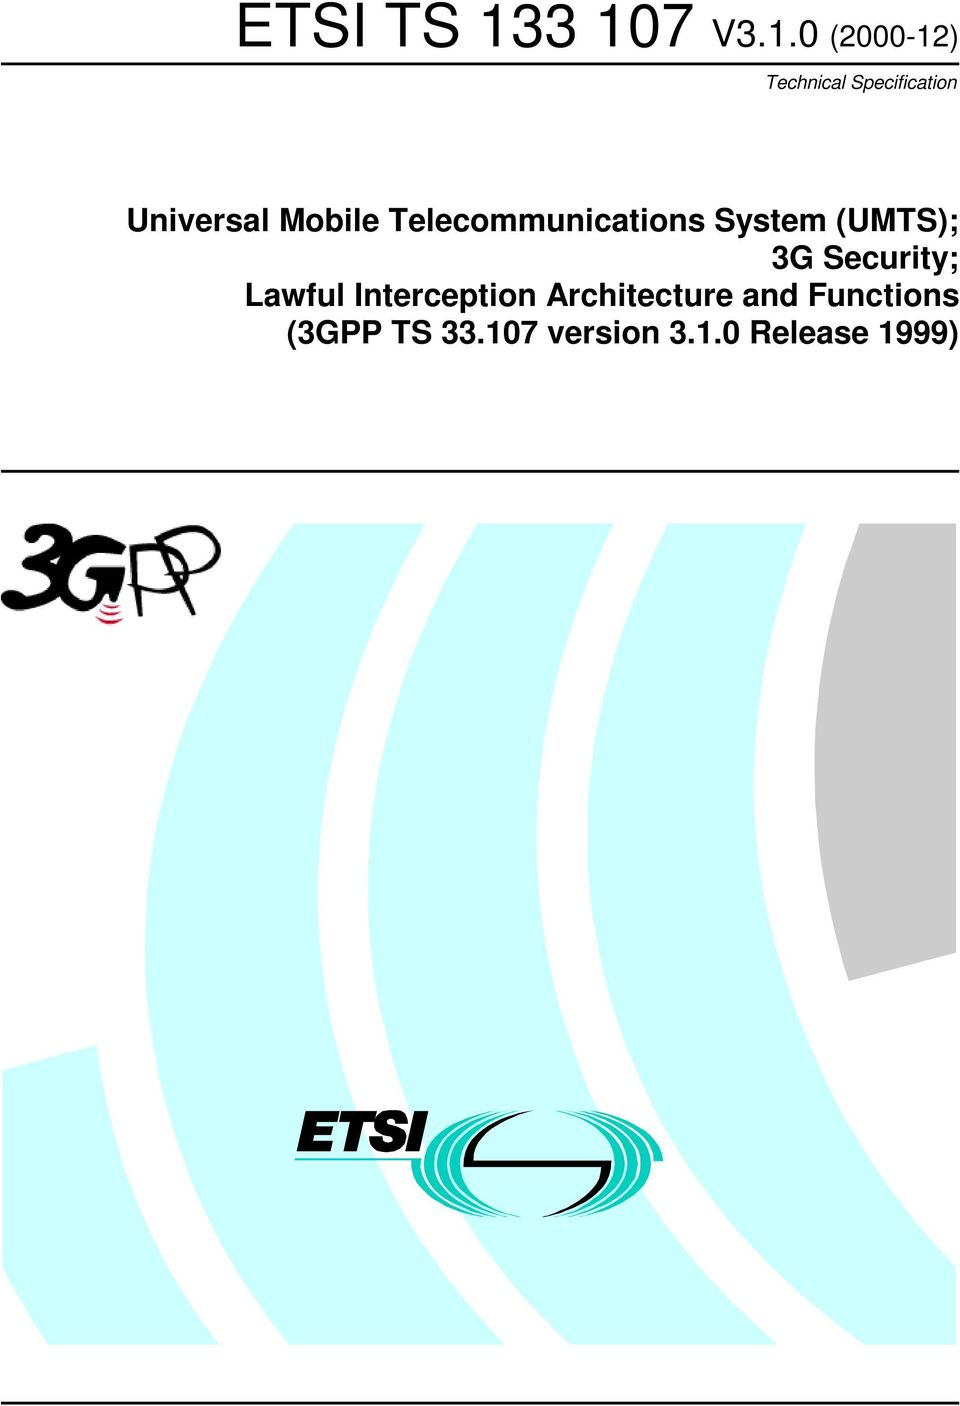 3G Security; Lawful Interception Architecture and